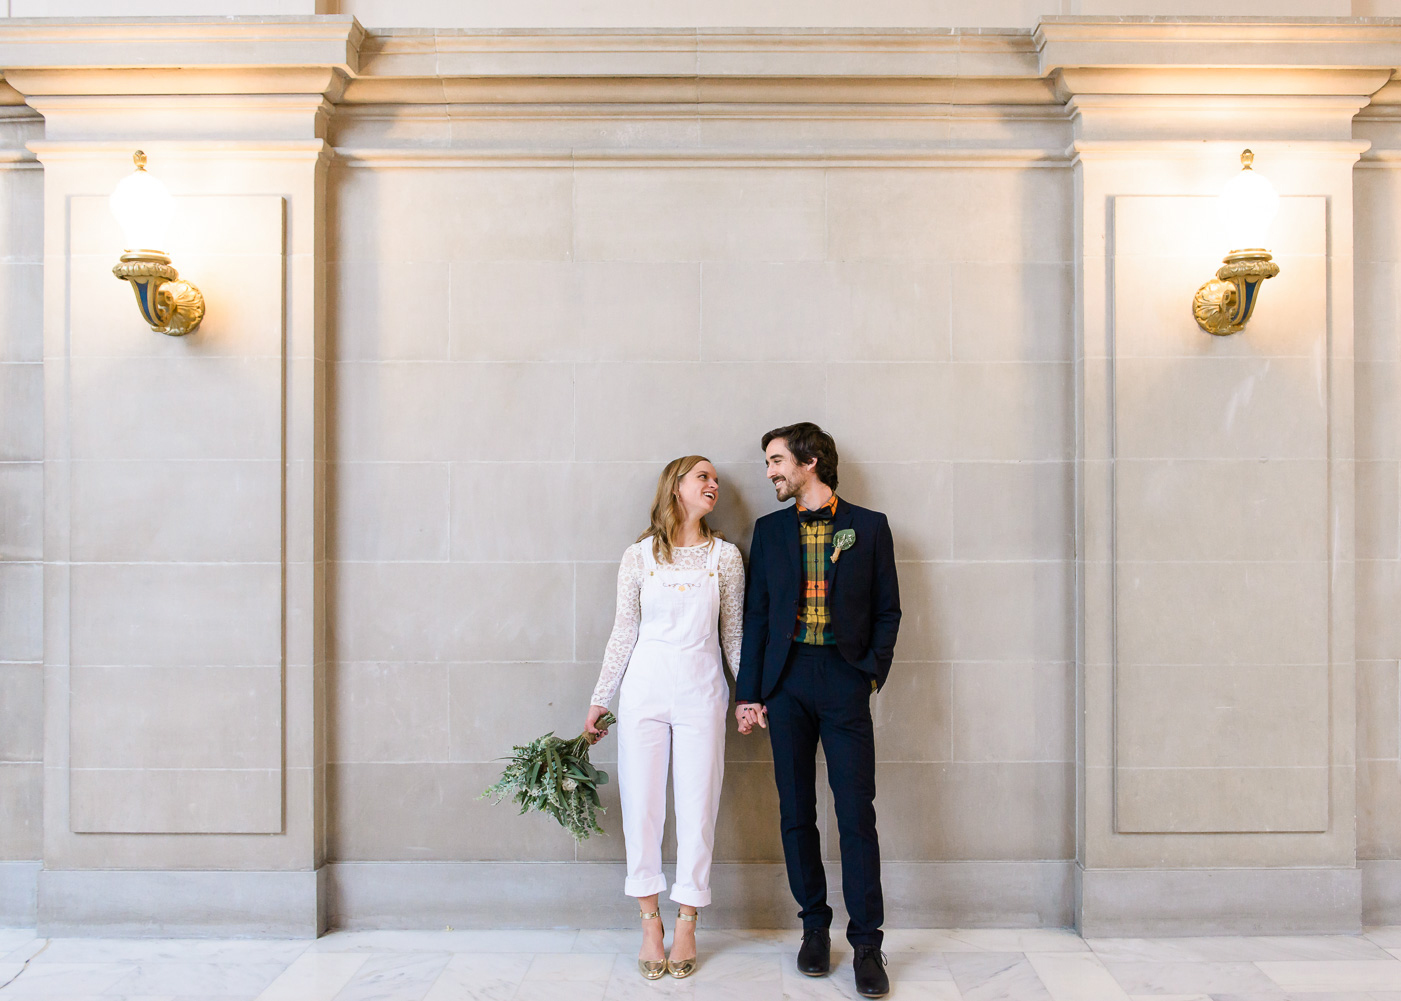 elopement at San Francisco city hall 43rd Ave Photography